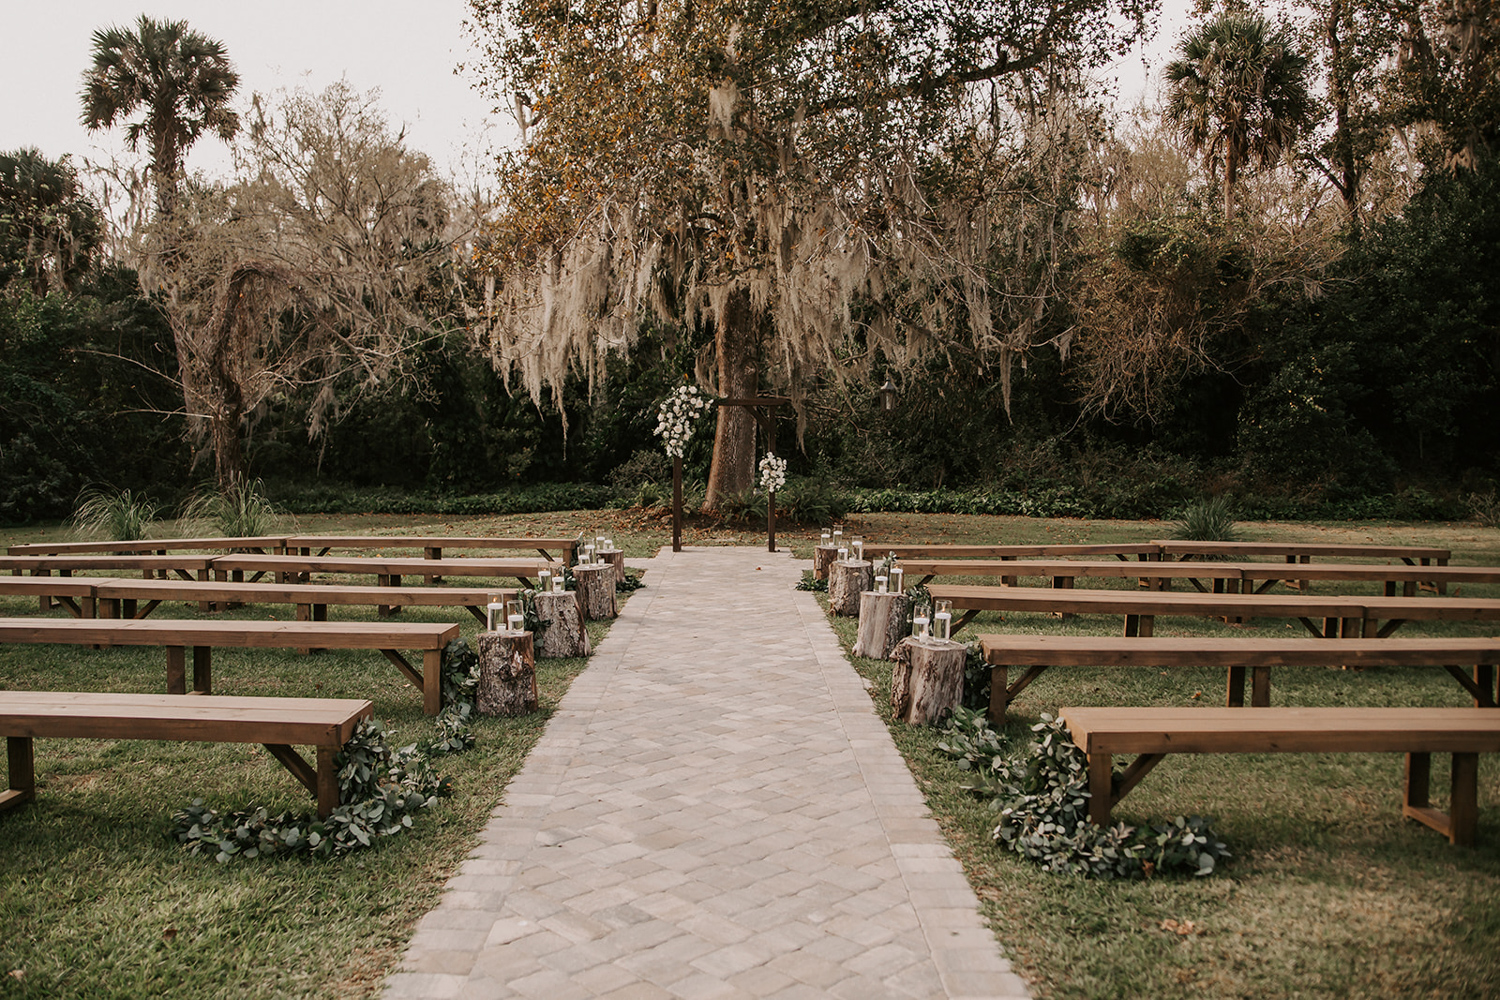 outdoor ceremony space at The Mulberry in New Smyrna Beach